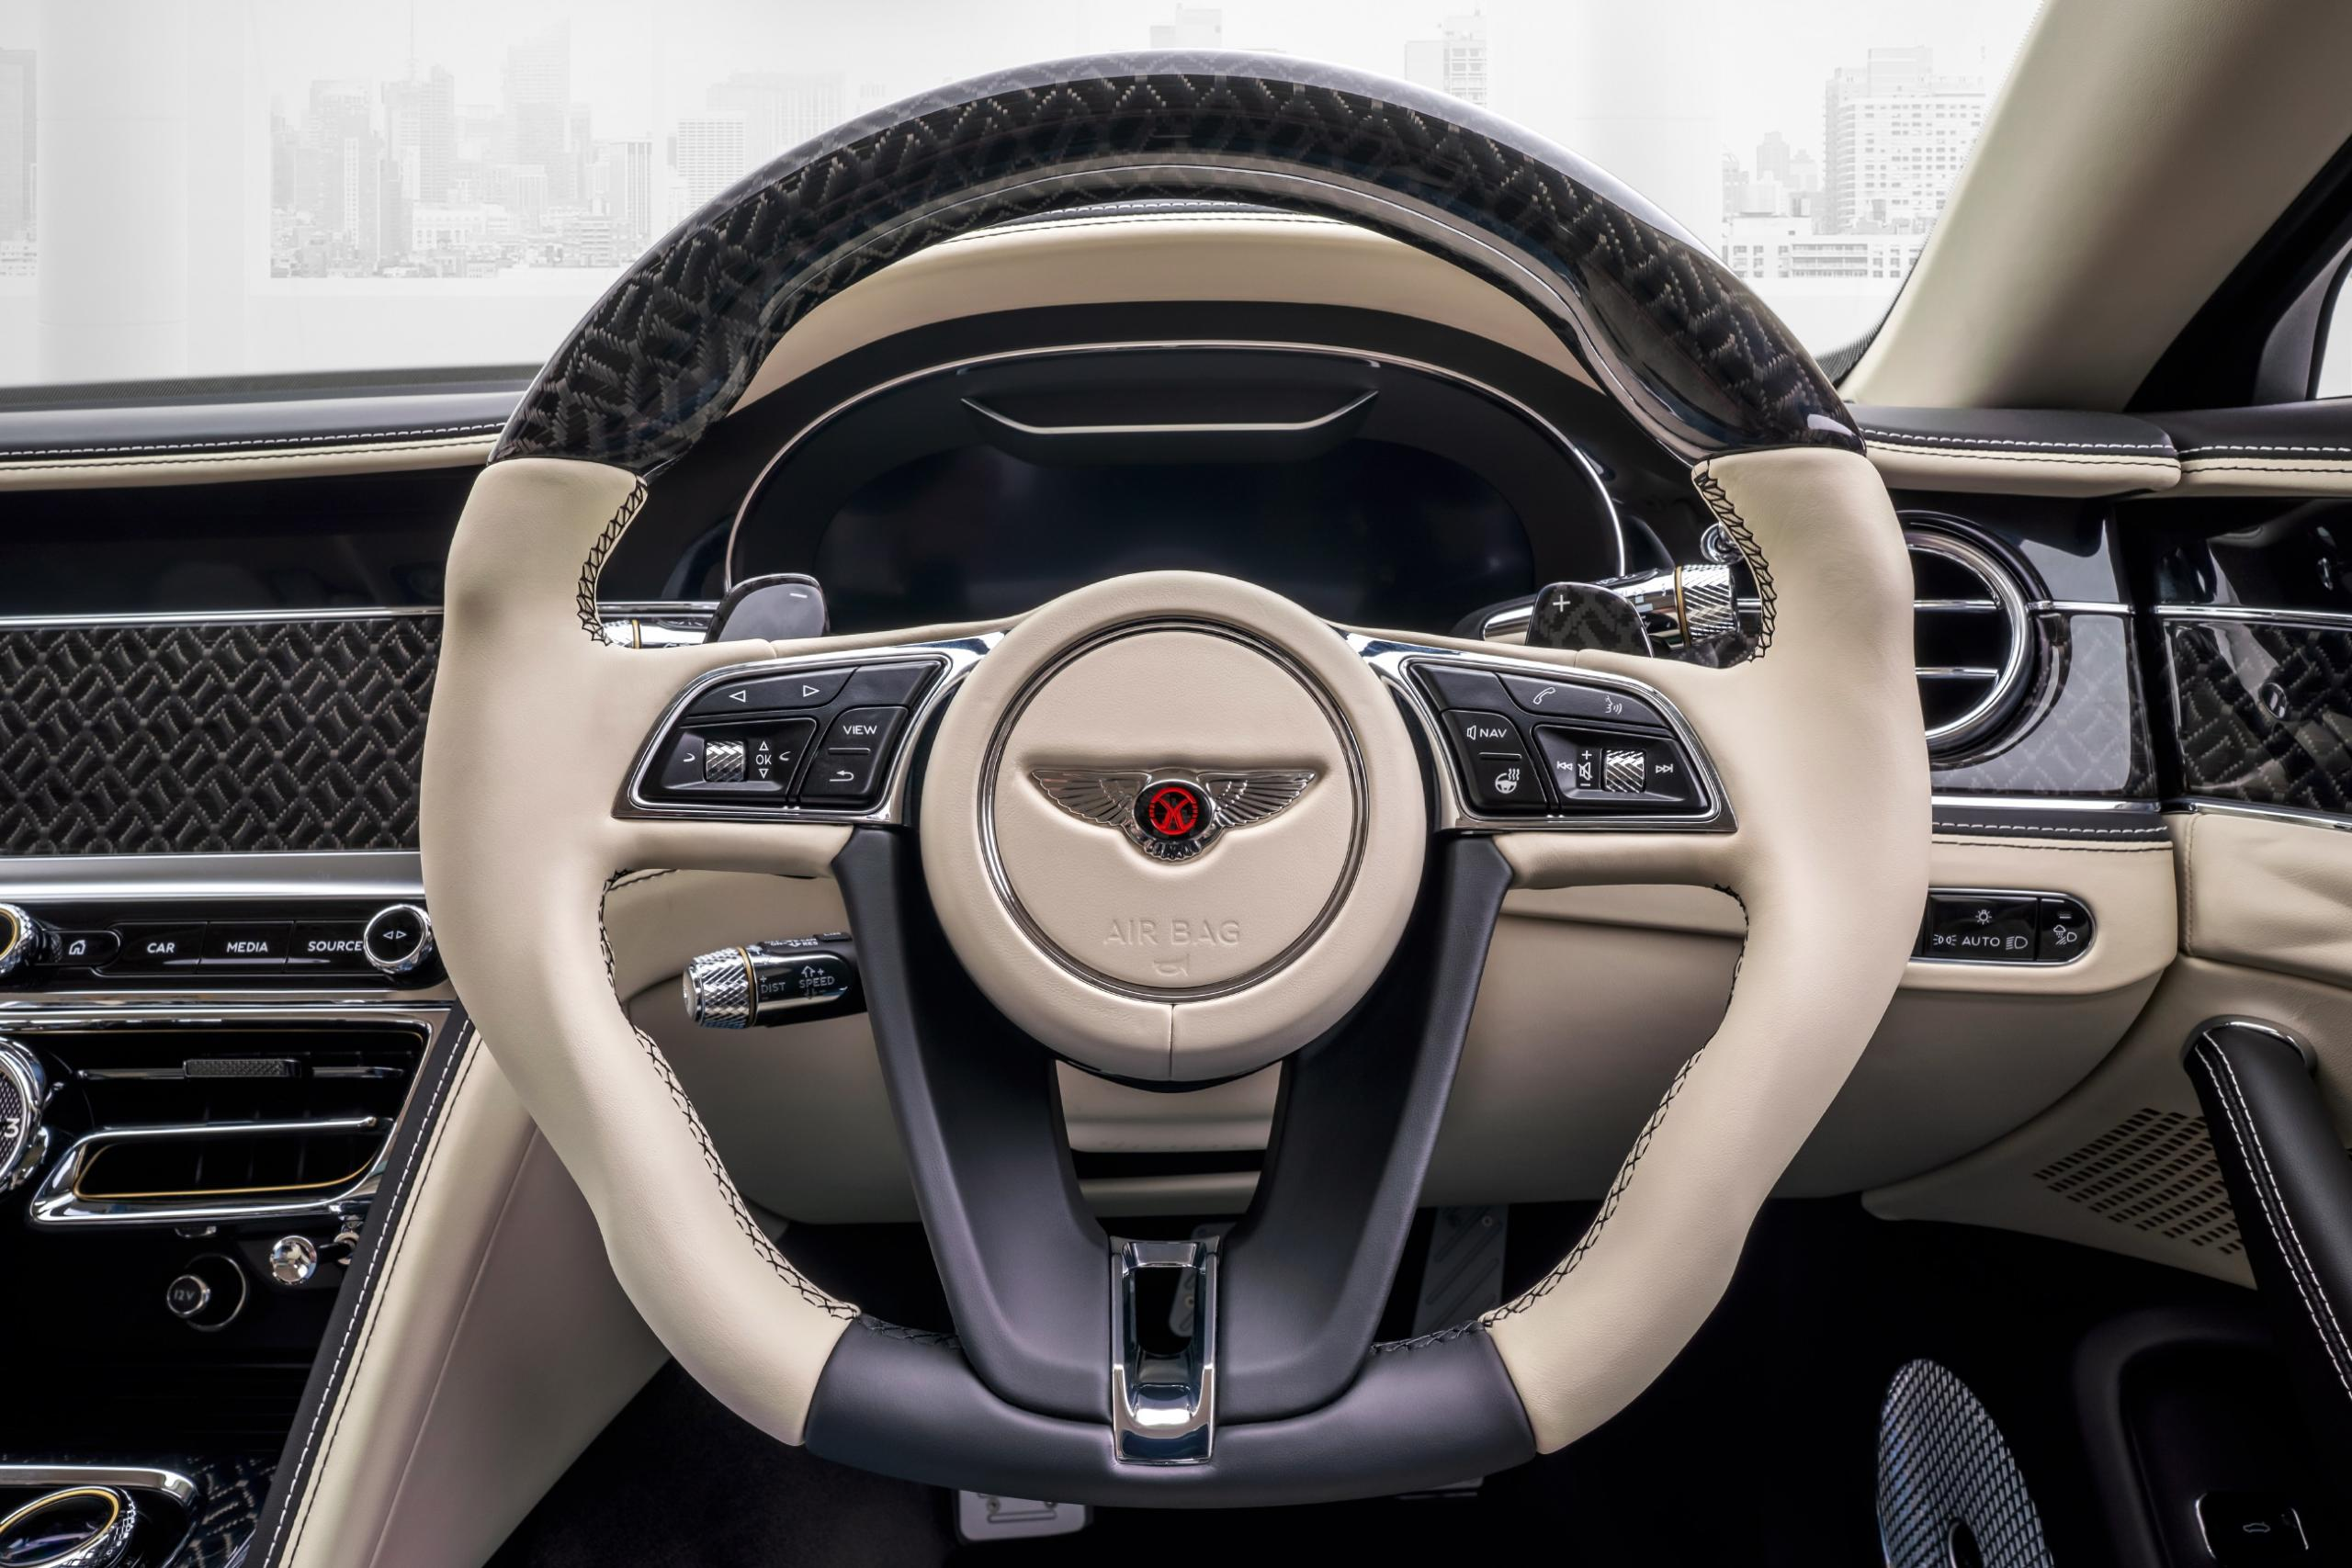 mansory bentley flying spur body kit interior carbon leather steering wheel